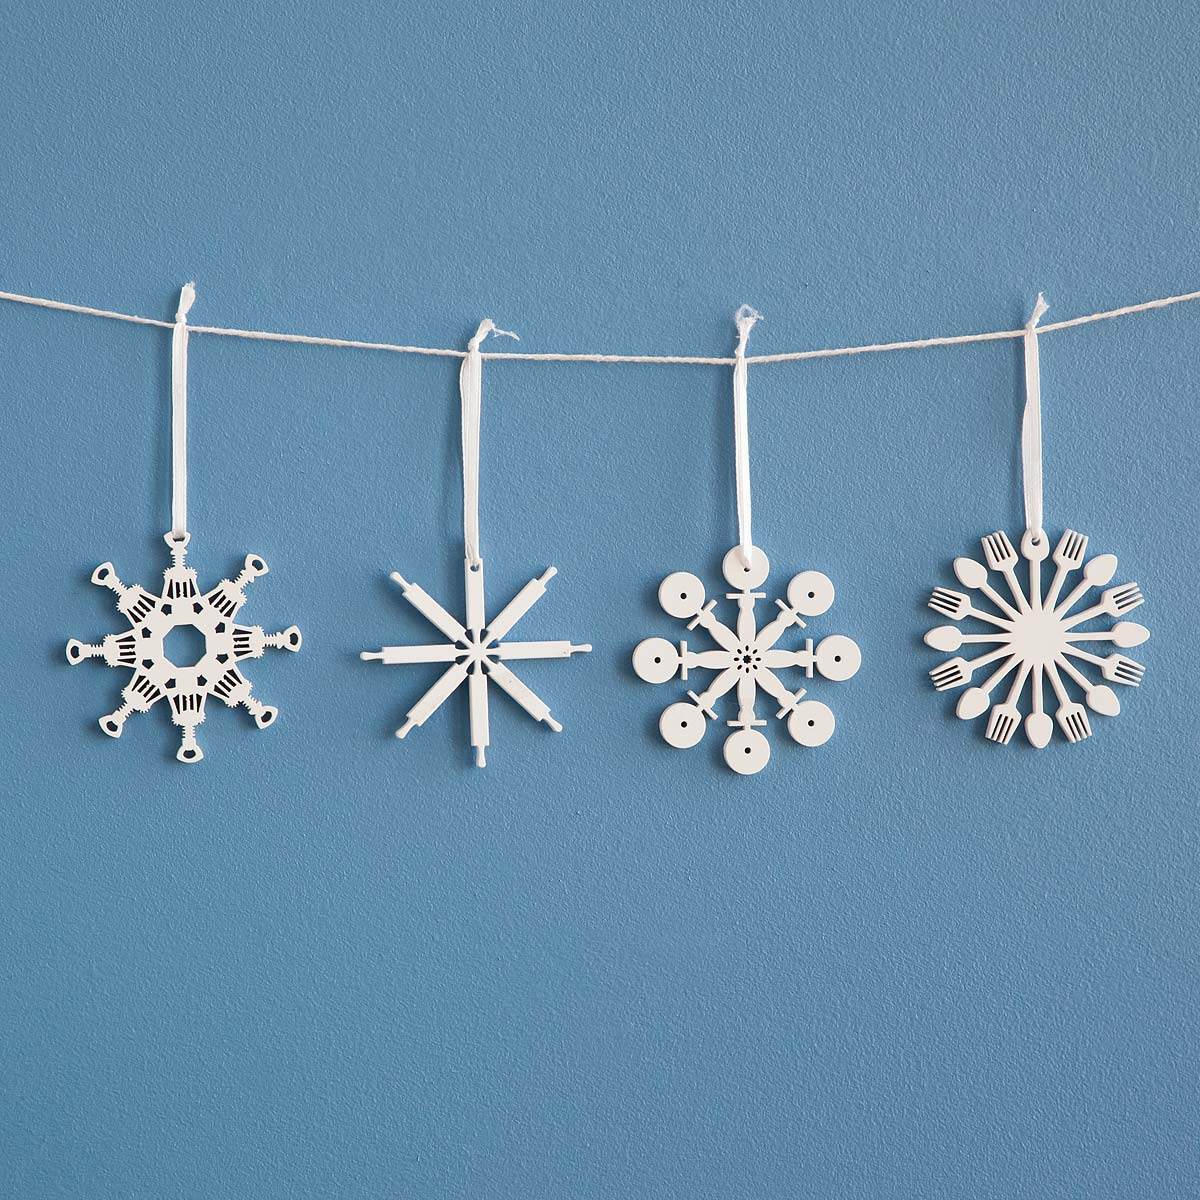 Kitchen Ornament Kitchen Tool Flake Ornaments Set Of 4 Snowflake Decorations